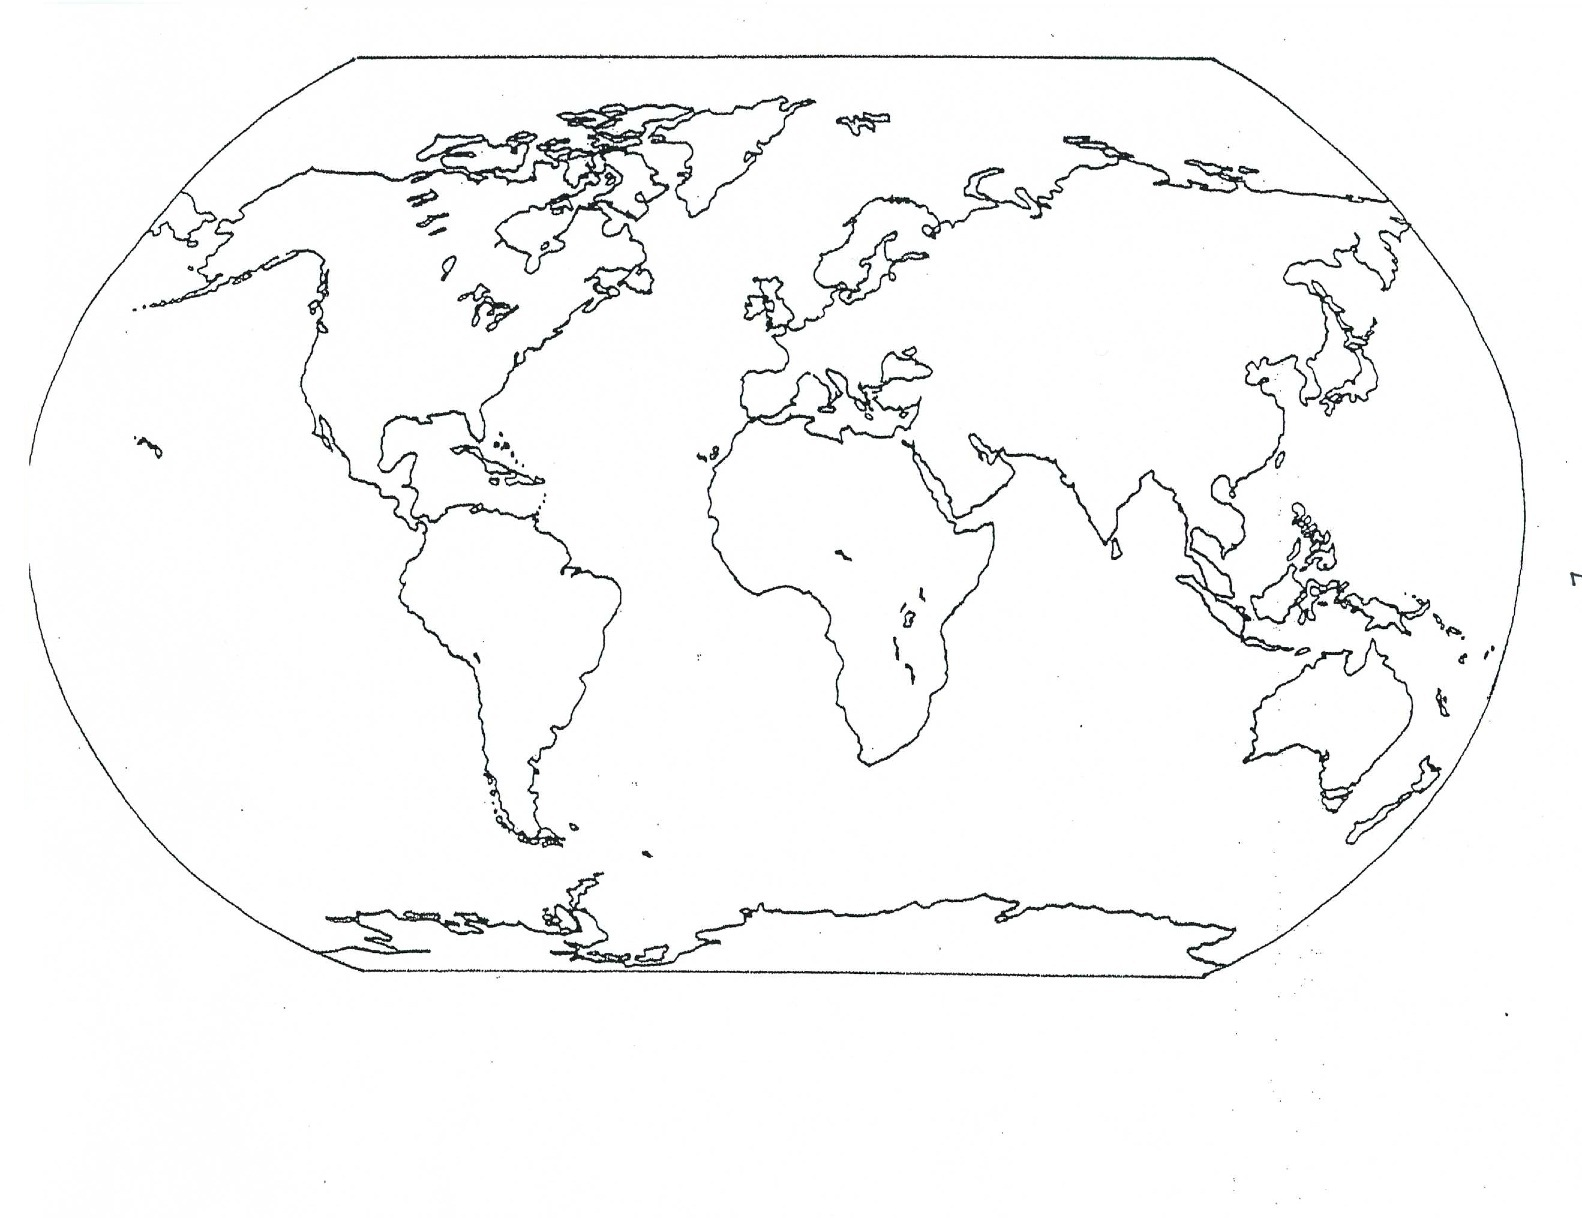 World map drawing for kids at getdrawings free for personal 1582x1218 free printable world map coloring pages for kids gumiabroncs Image collections